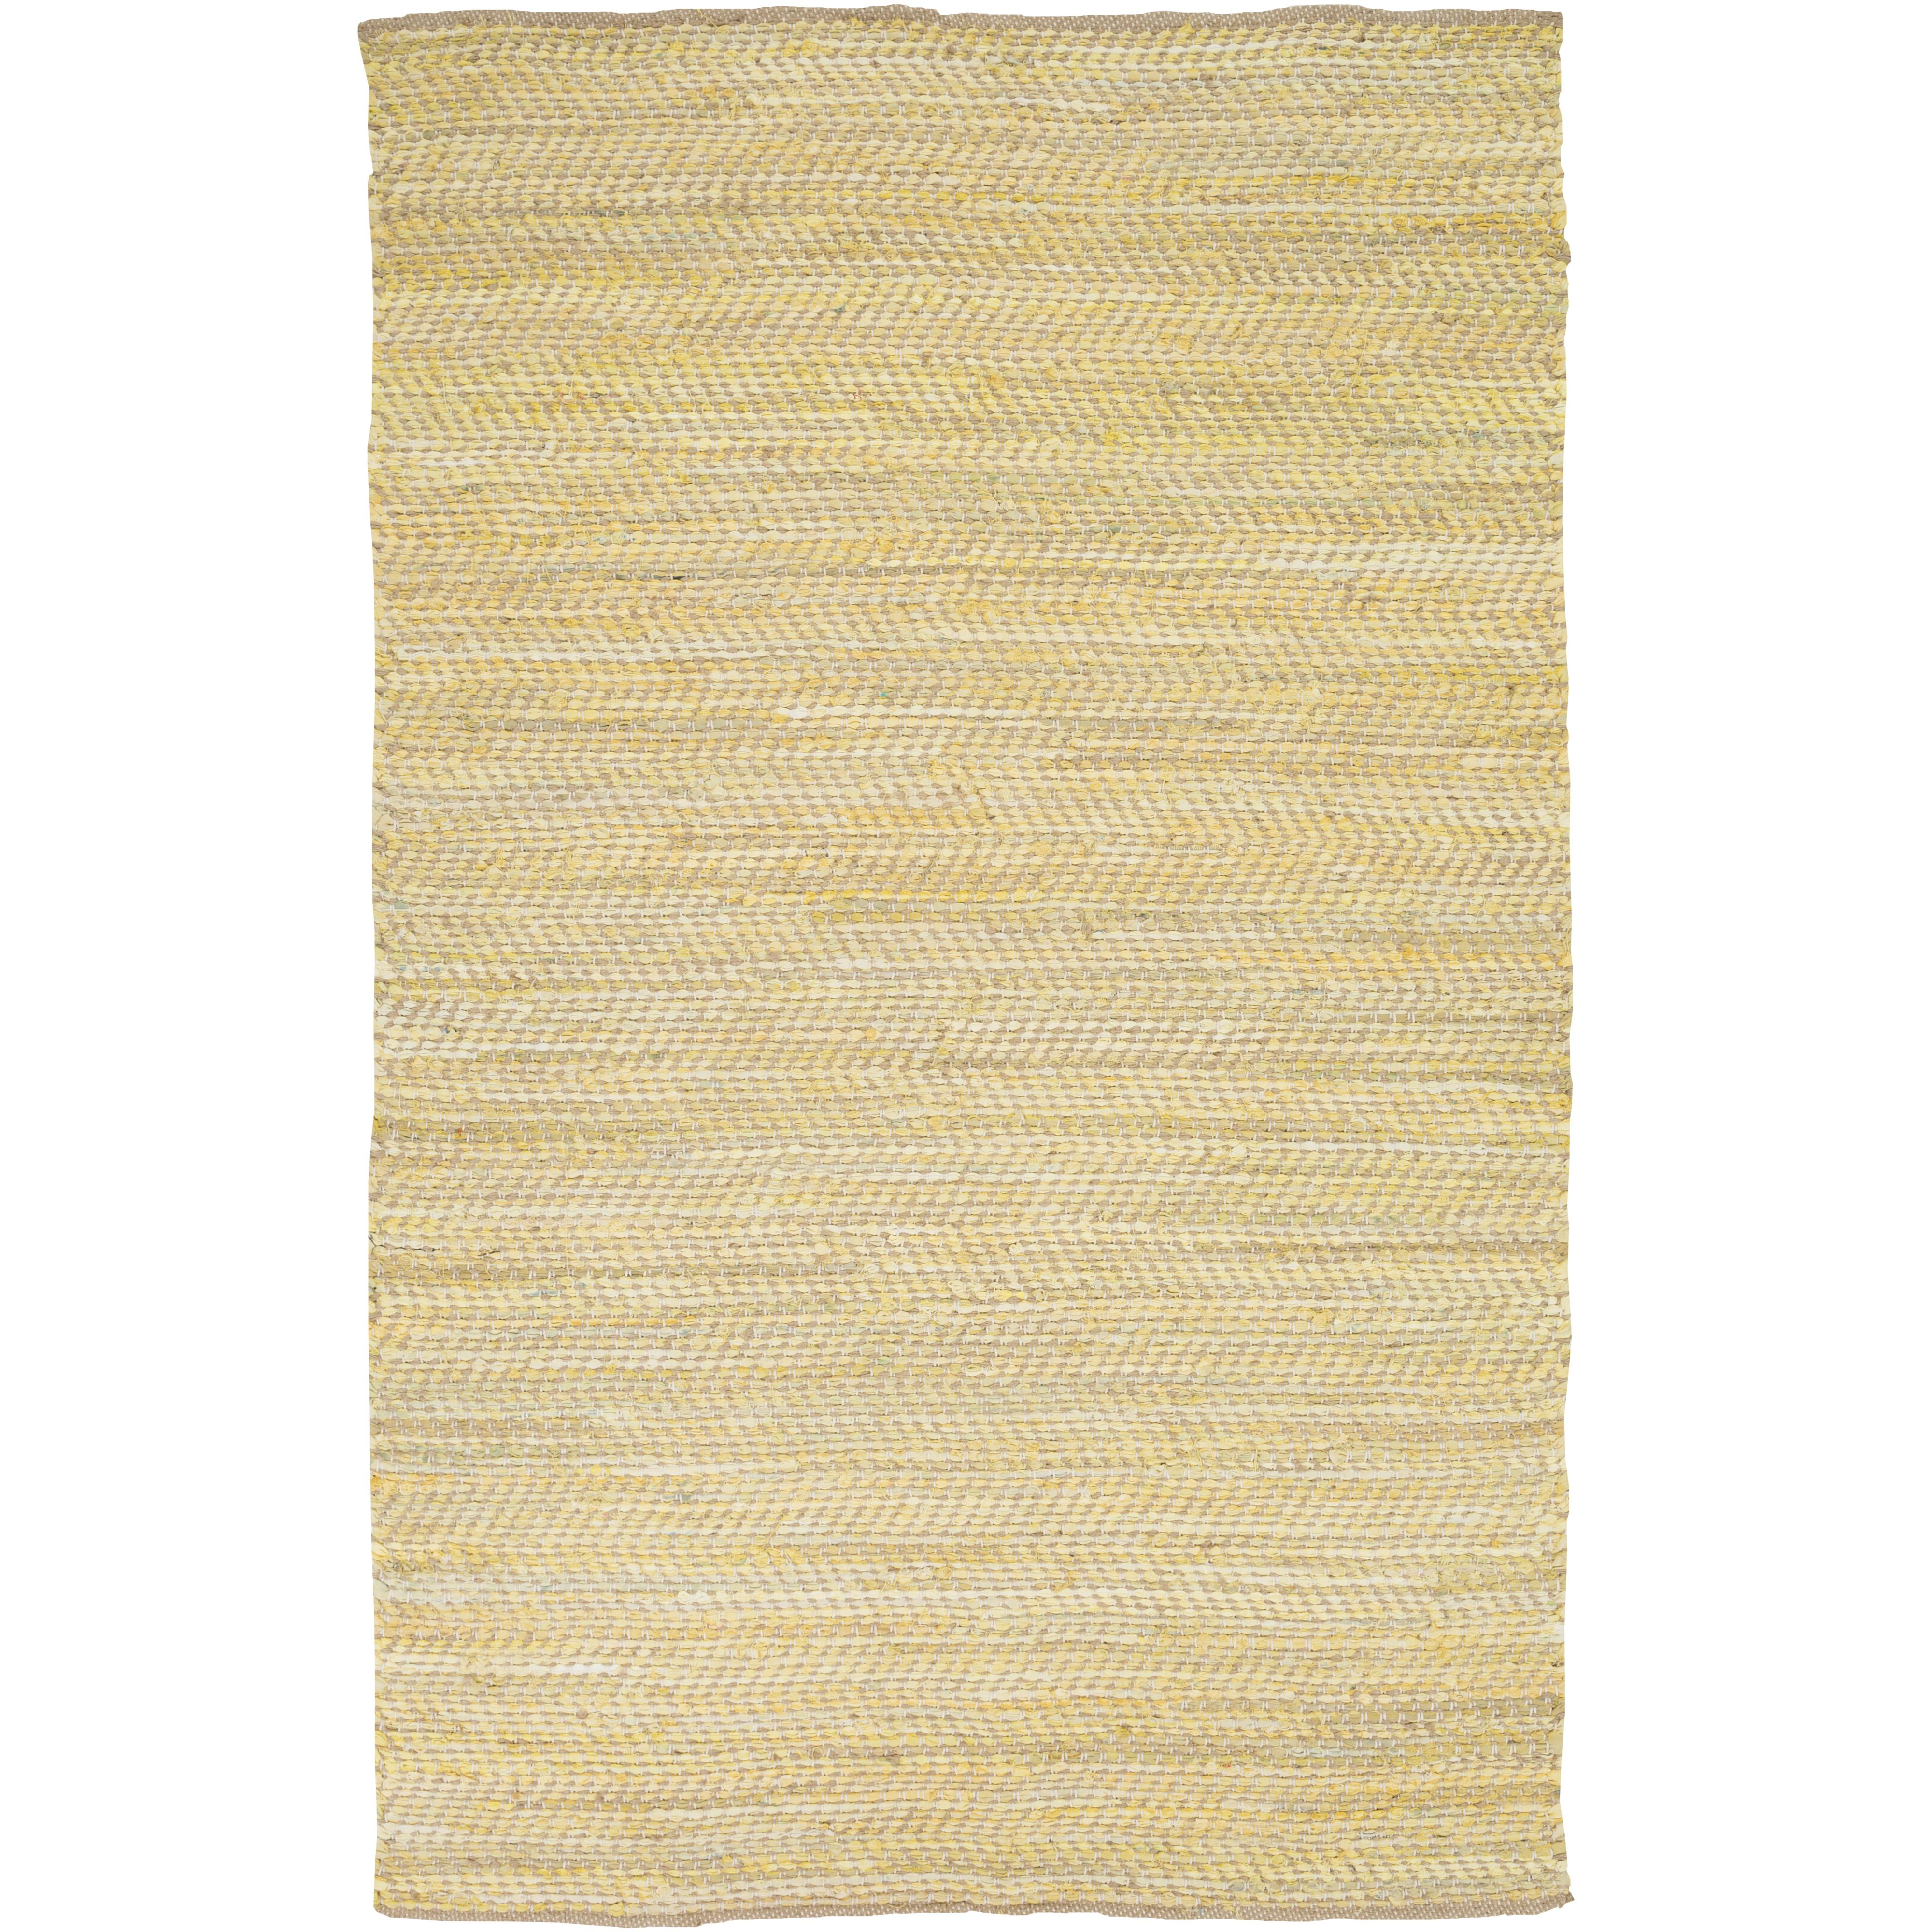 Surya Rugs Fanore 5' x 8' - Item Number: FAN3007-58